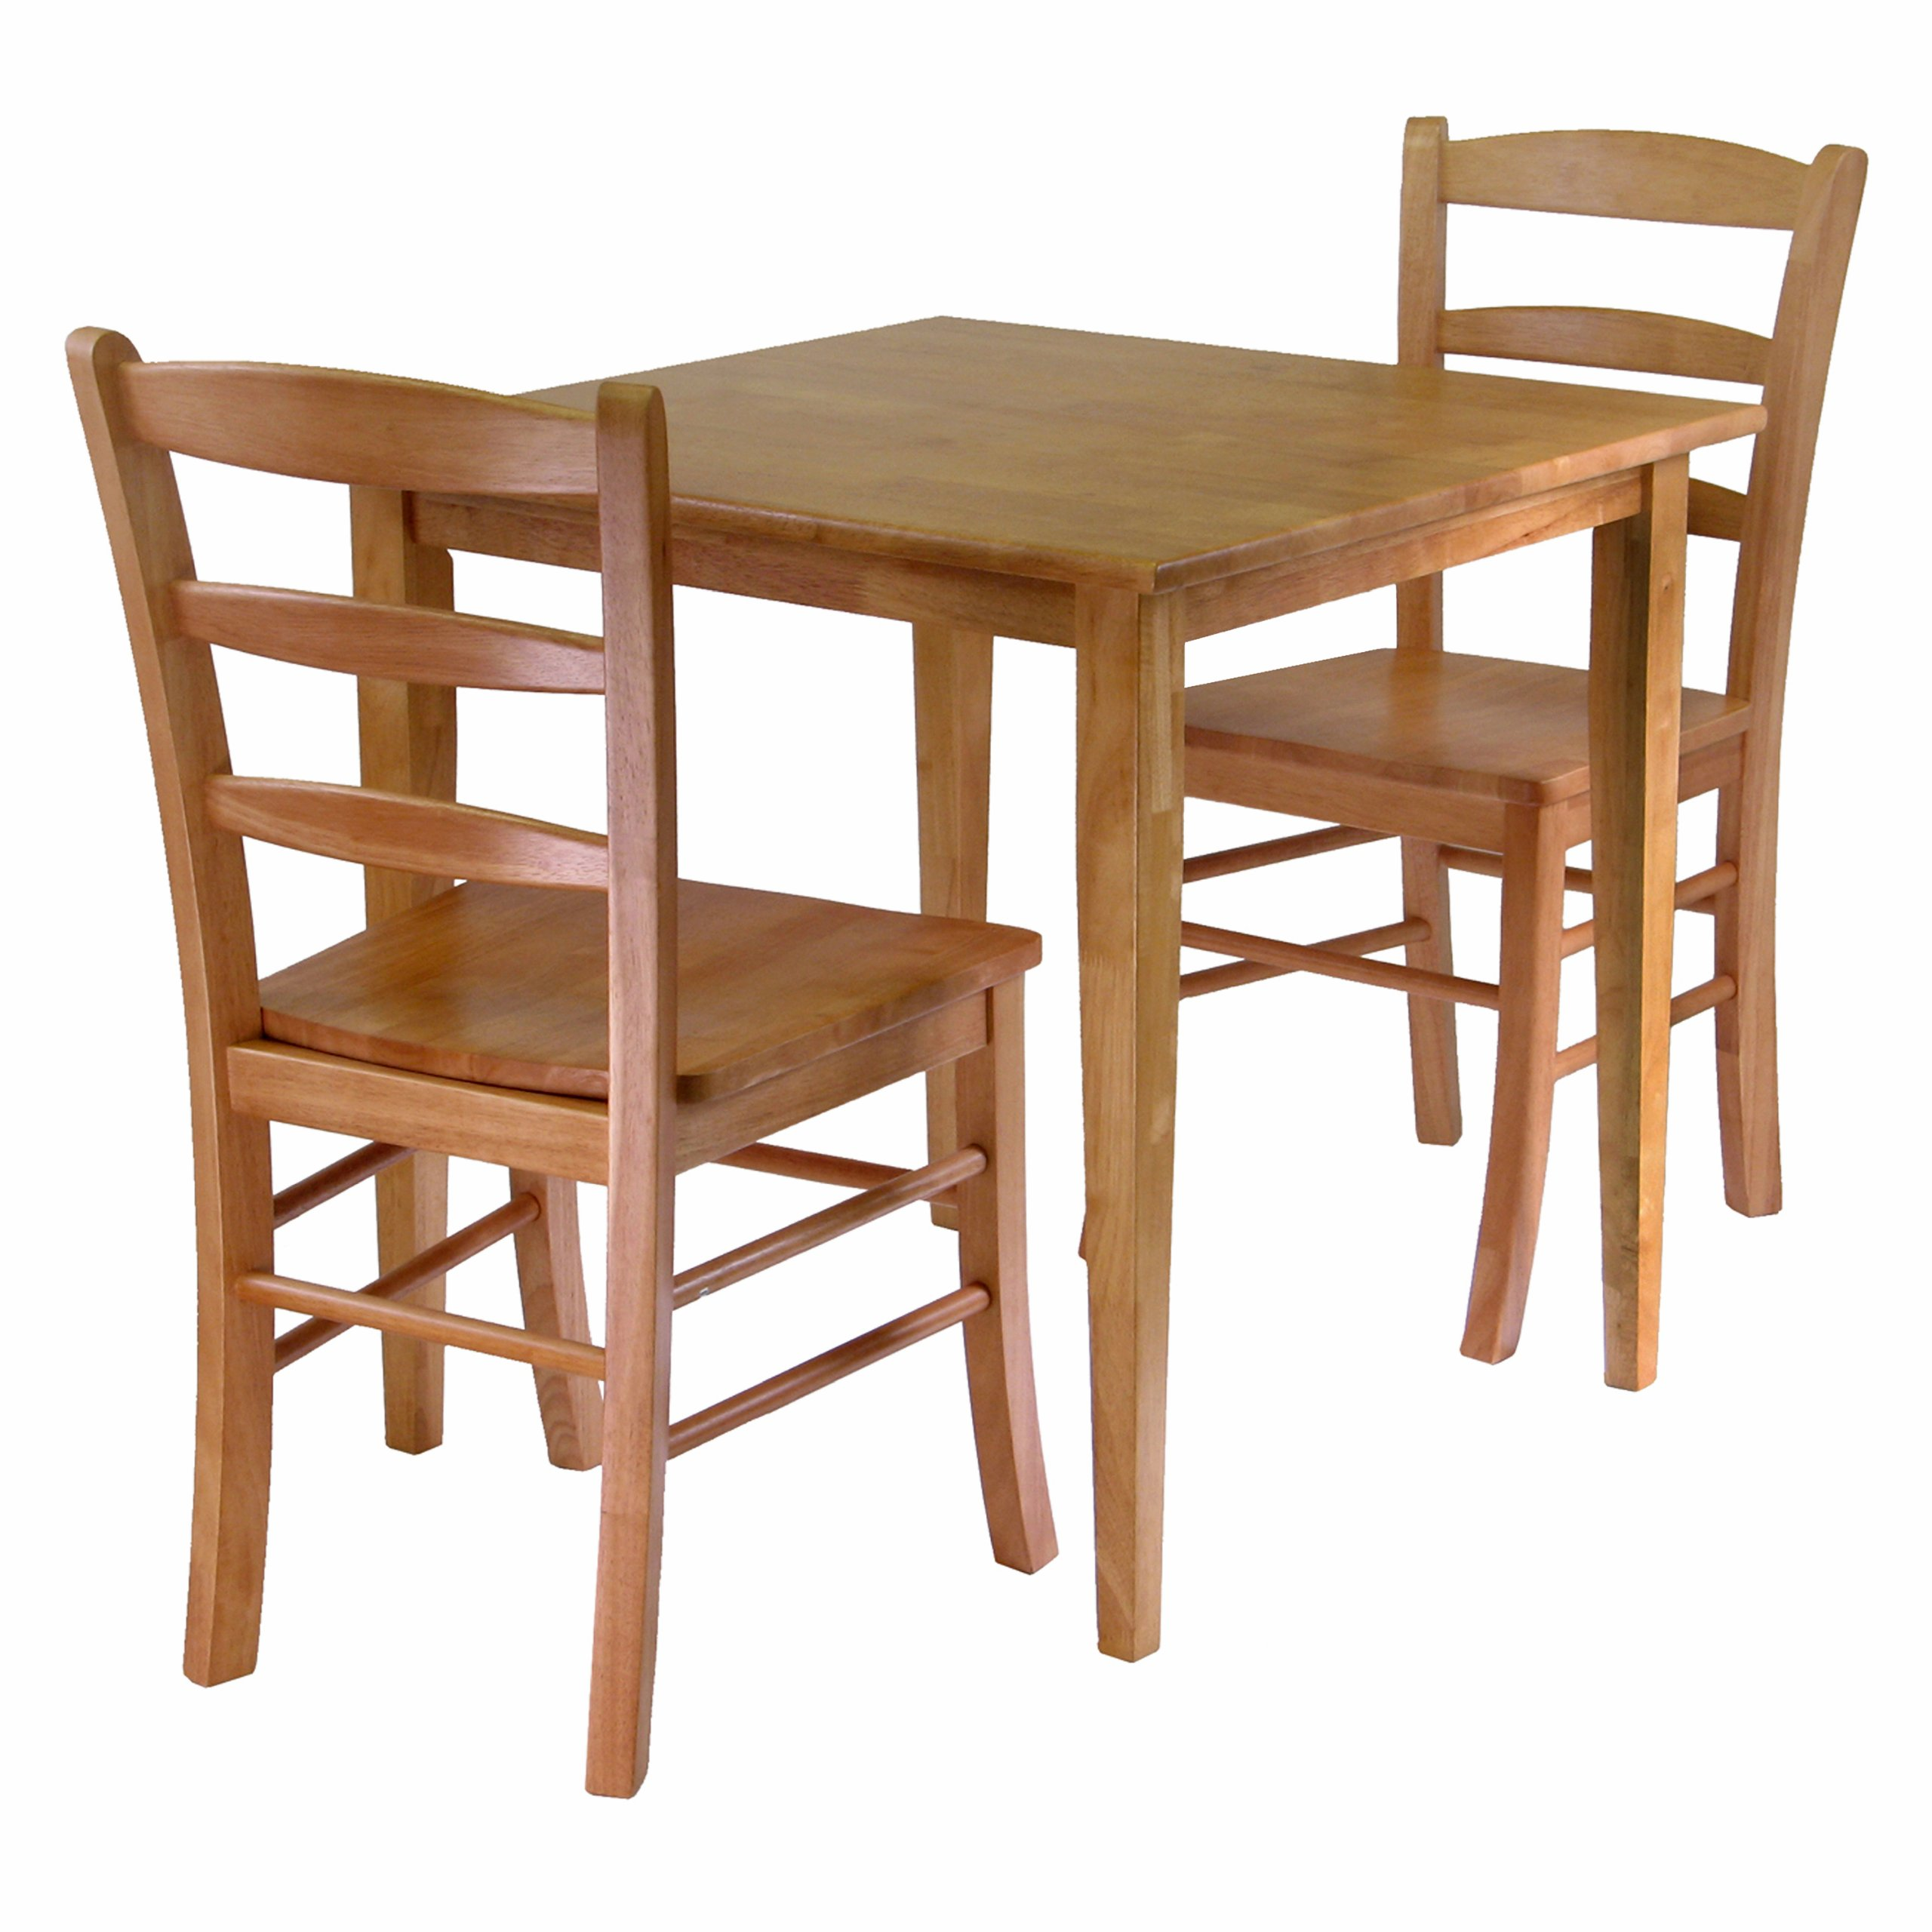 Winsome Groveland 3-Piece Wood Dining Set, Light Oak Finish by Winsome Wood (Image #1)